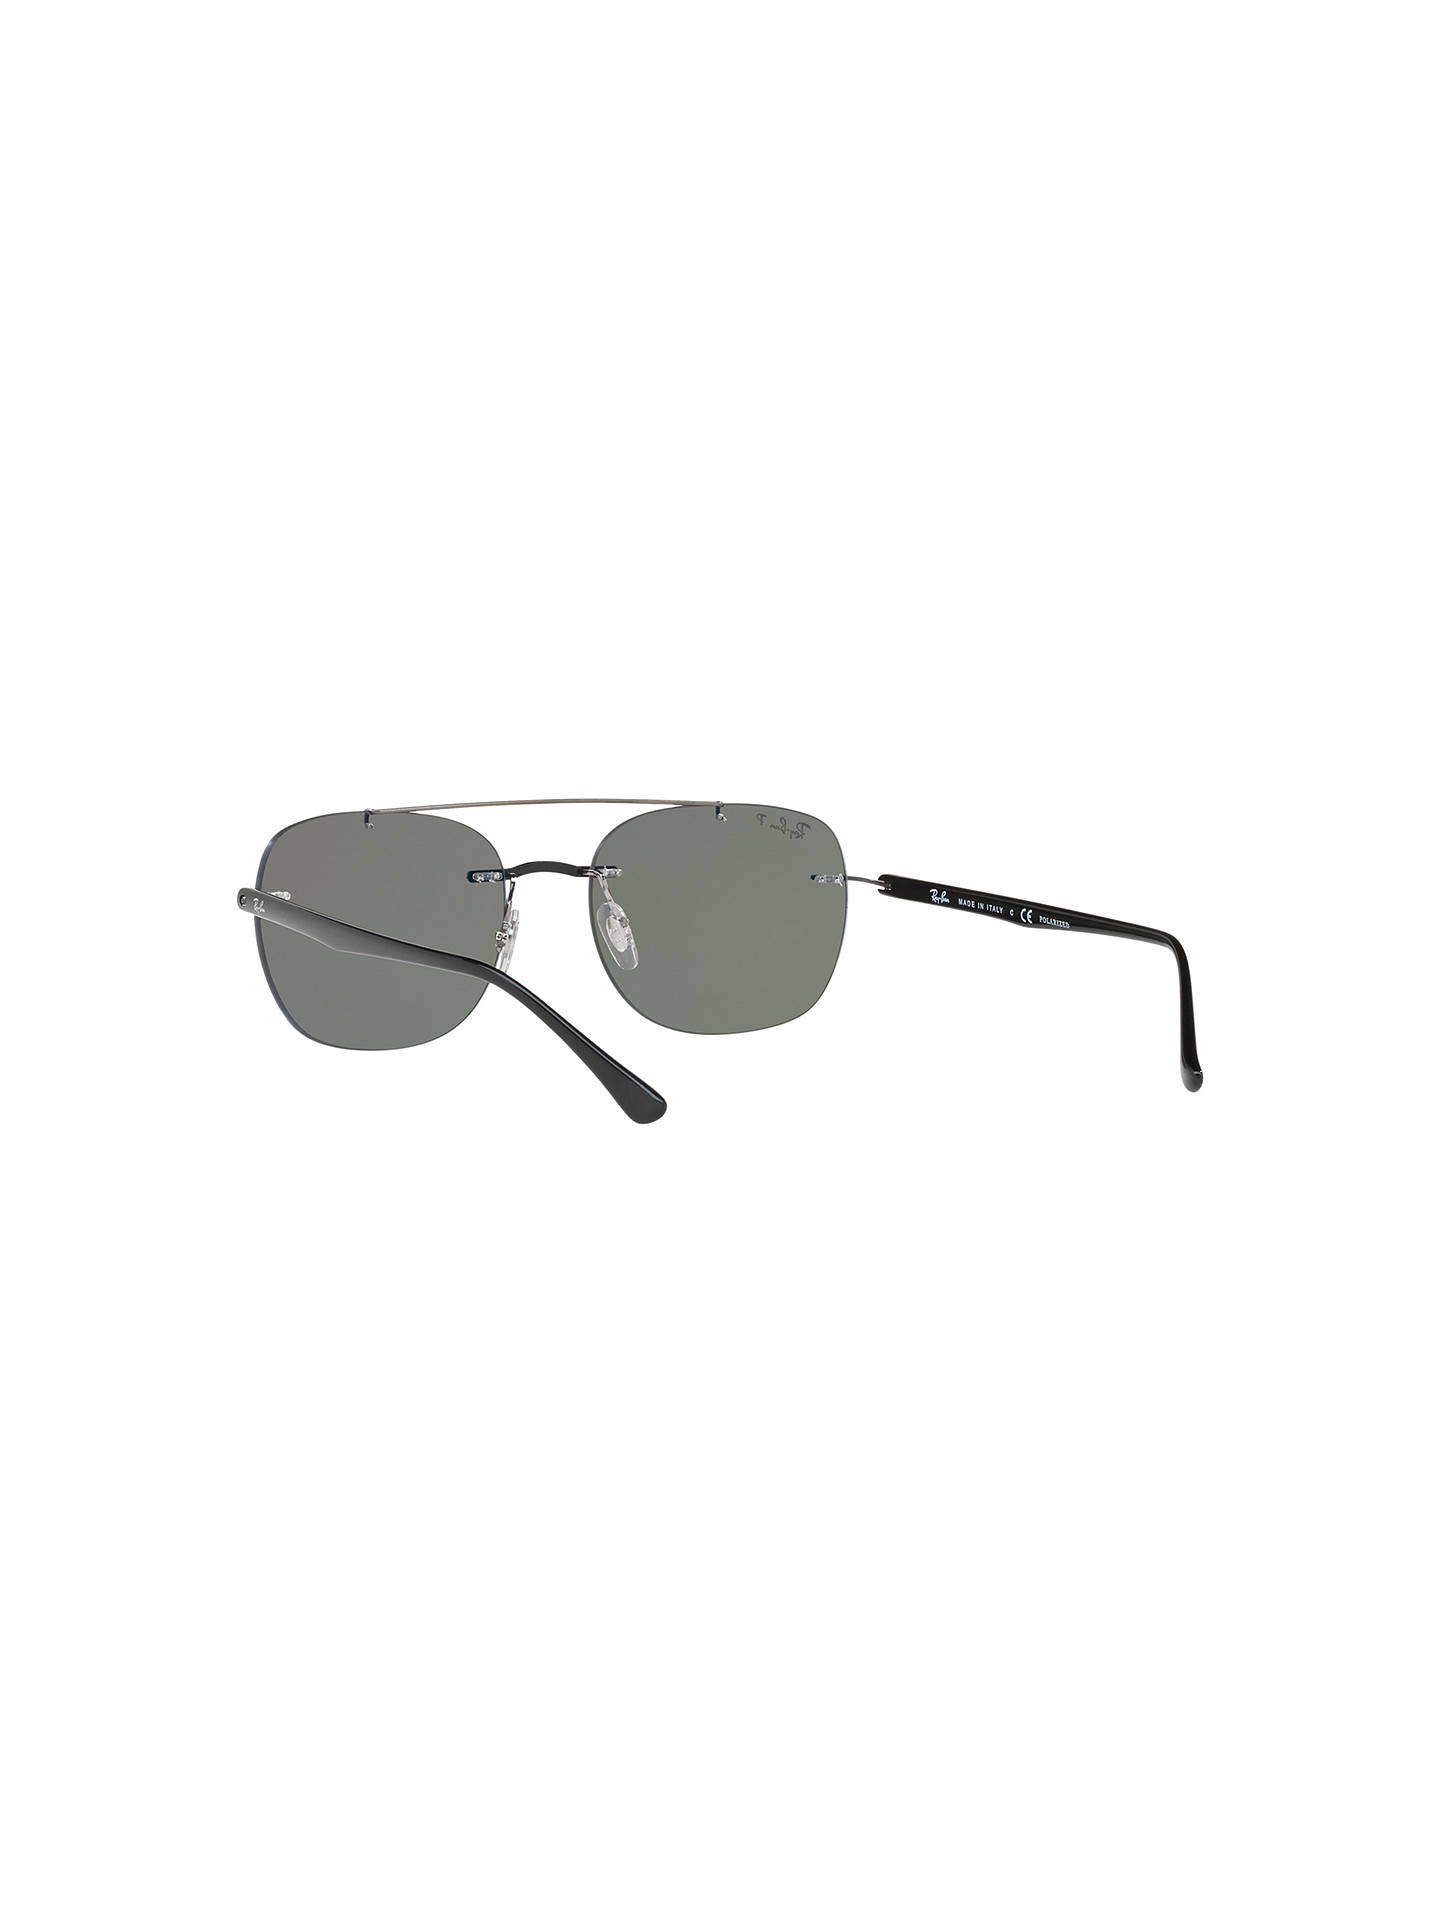 Buy Ray-Ban RB4280 Polarised Square Sunglasses, Silver/Grey Online at johnlewis.com